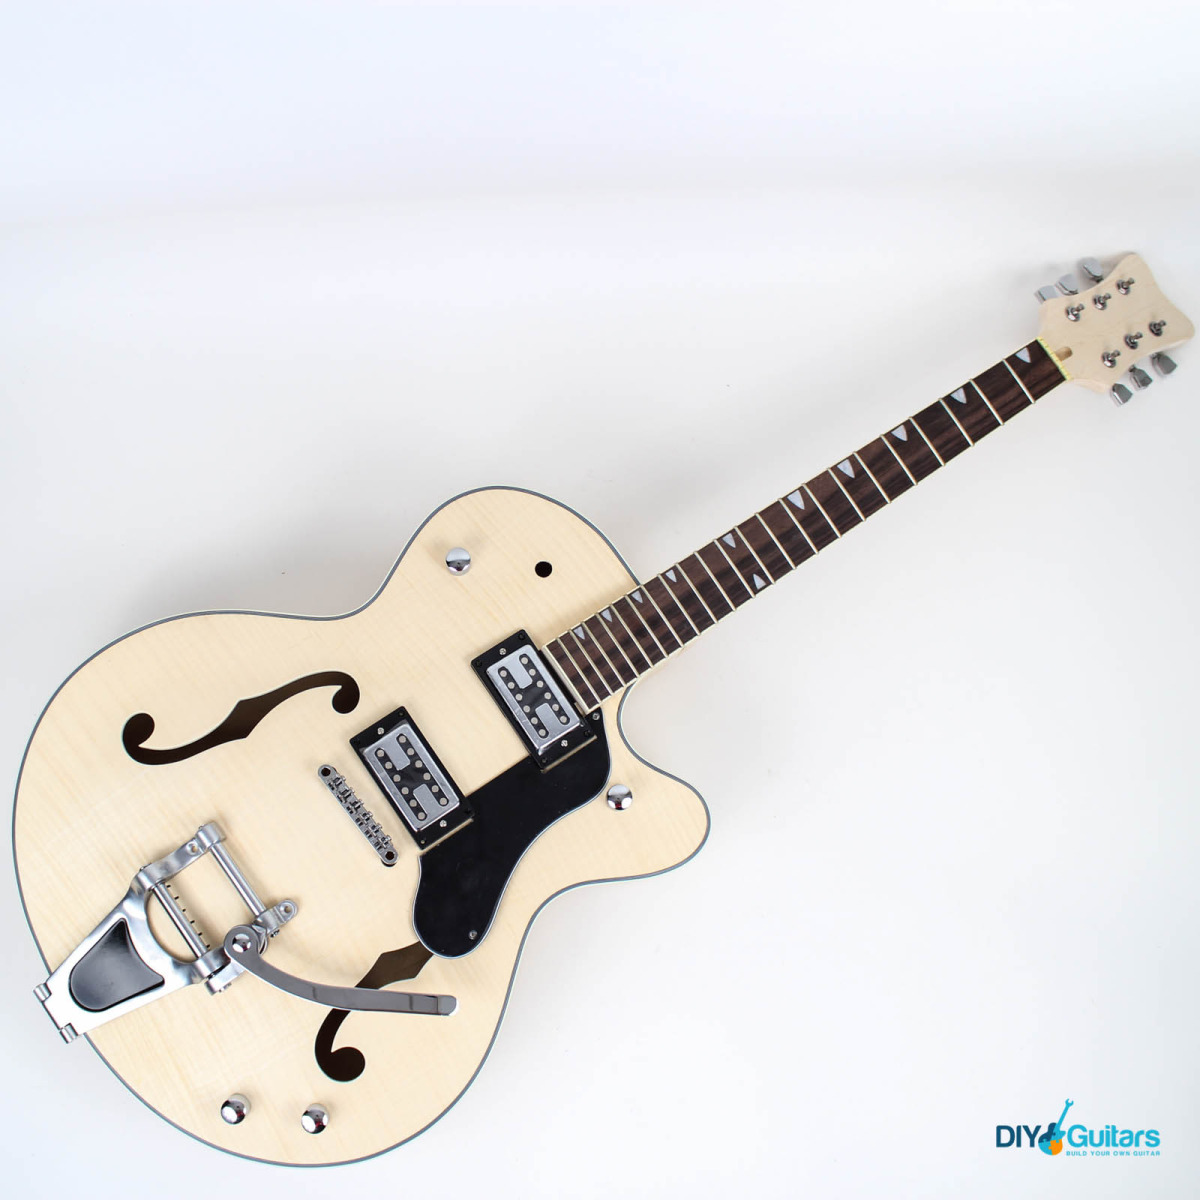 Gretsch style hollow body diy guitars main components main components in place solutioingenieria Image collections